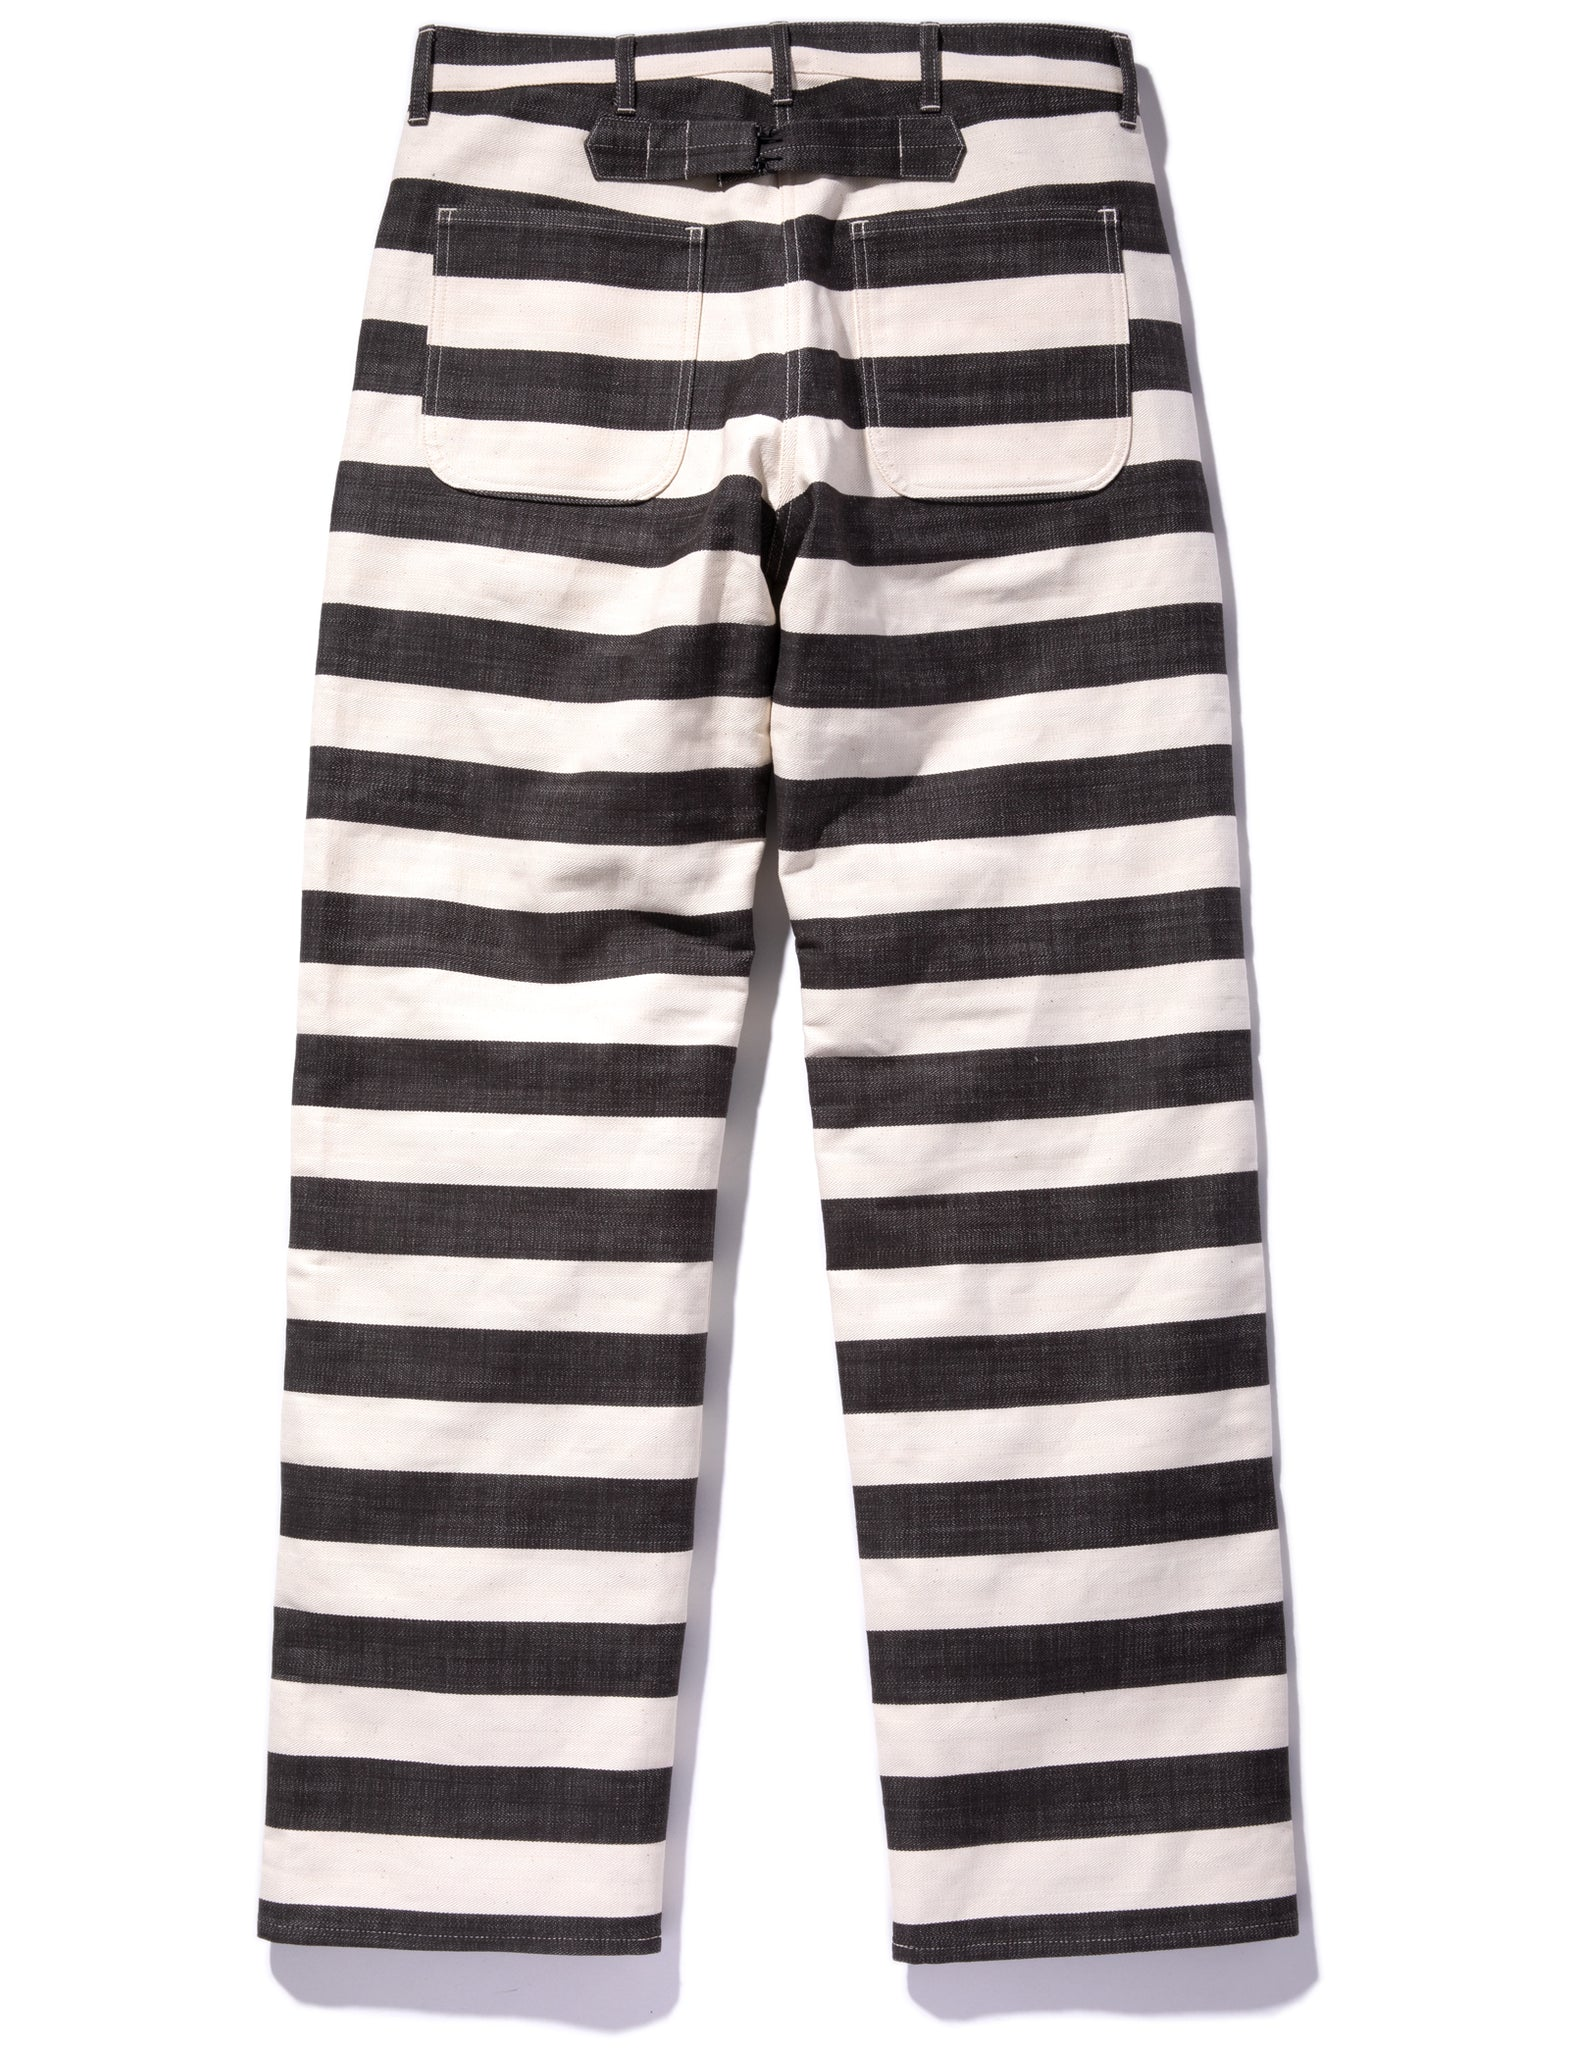 PRISONER TROUSERS